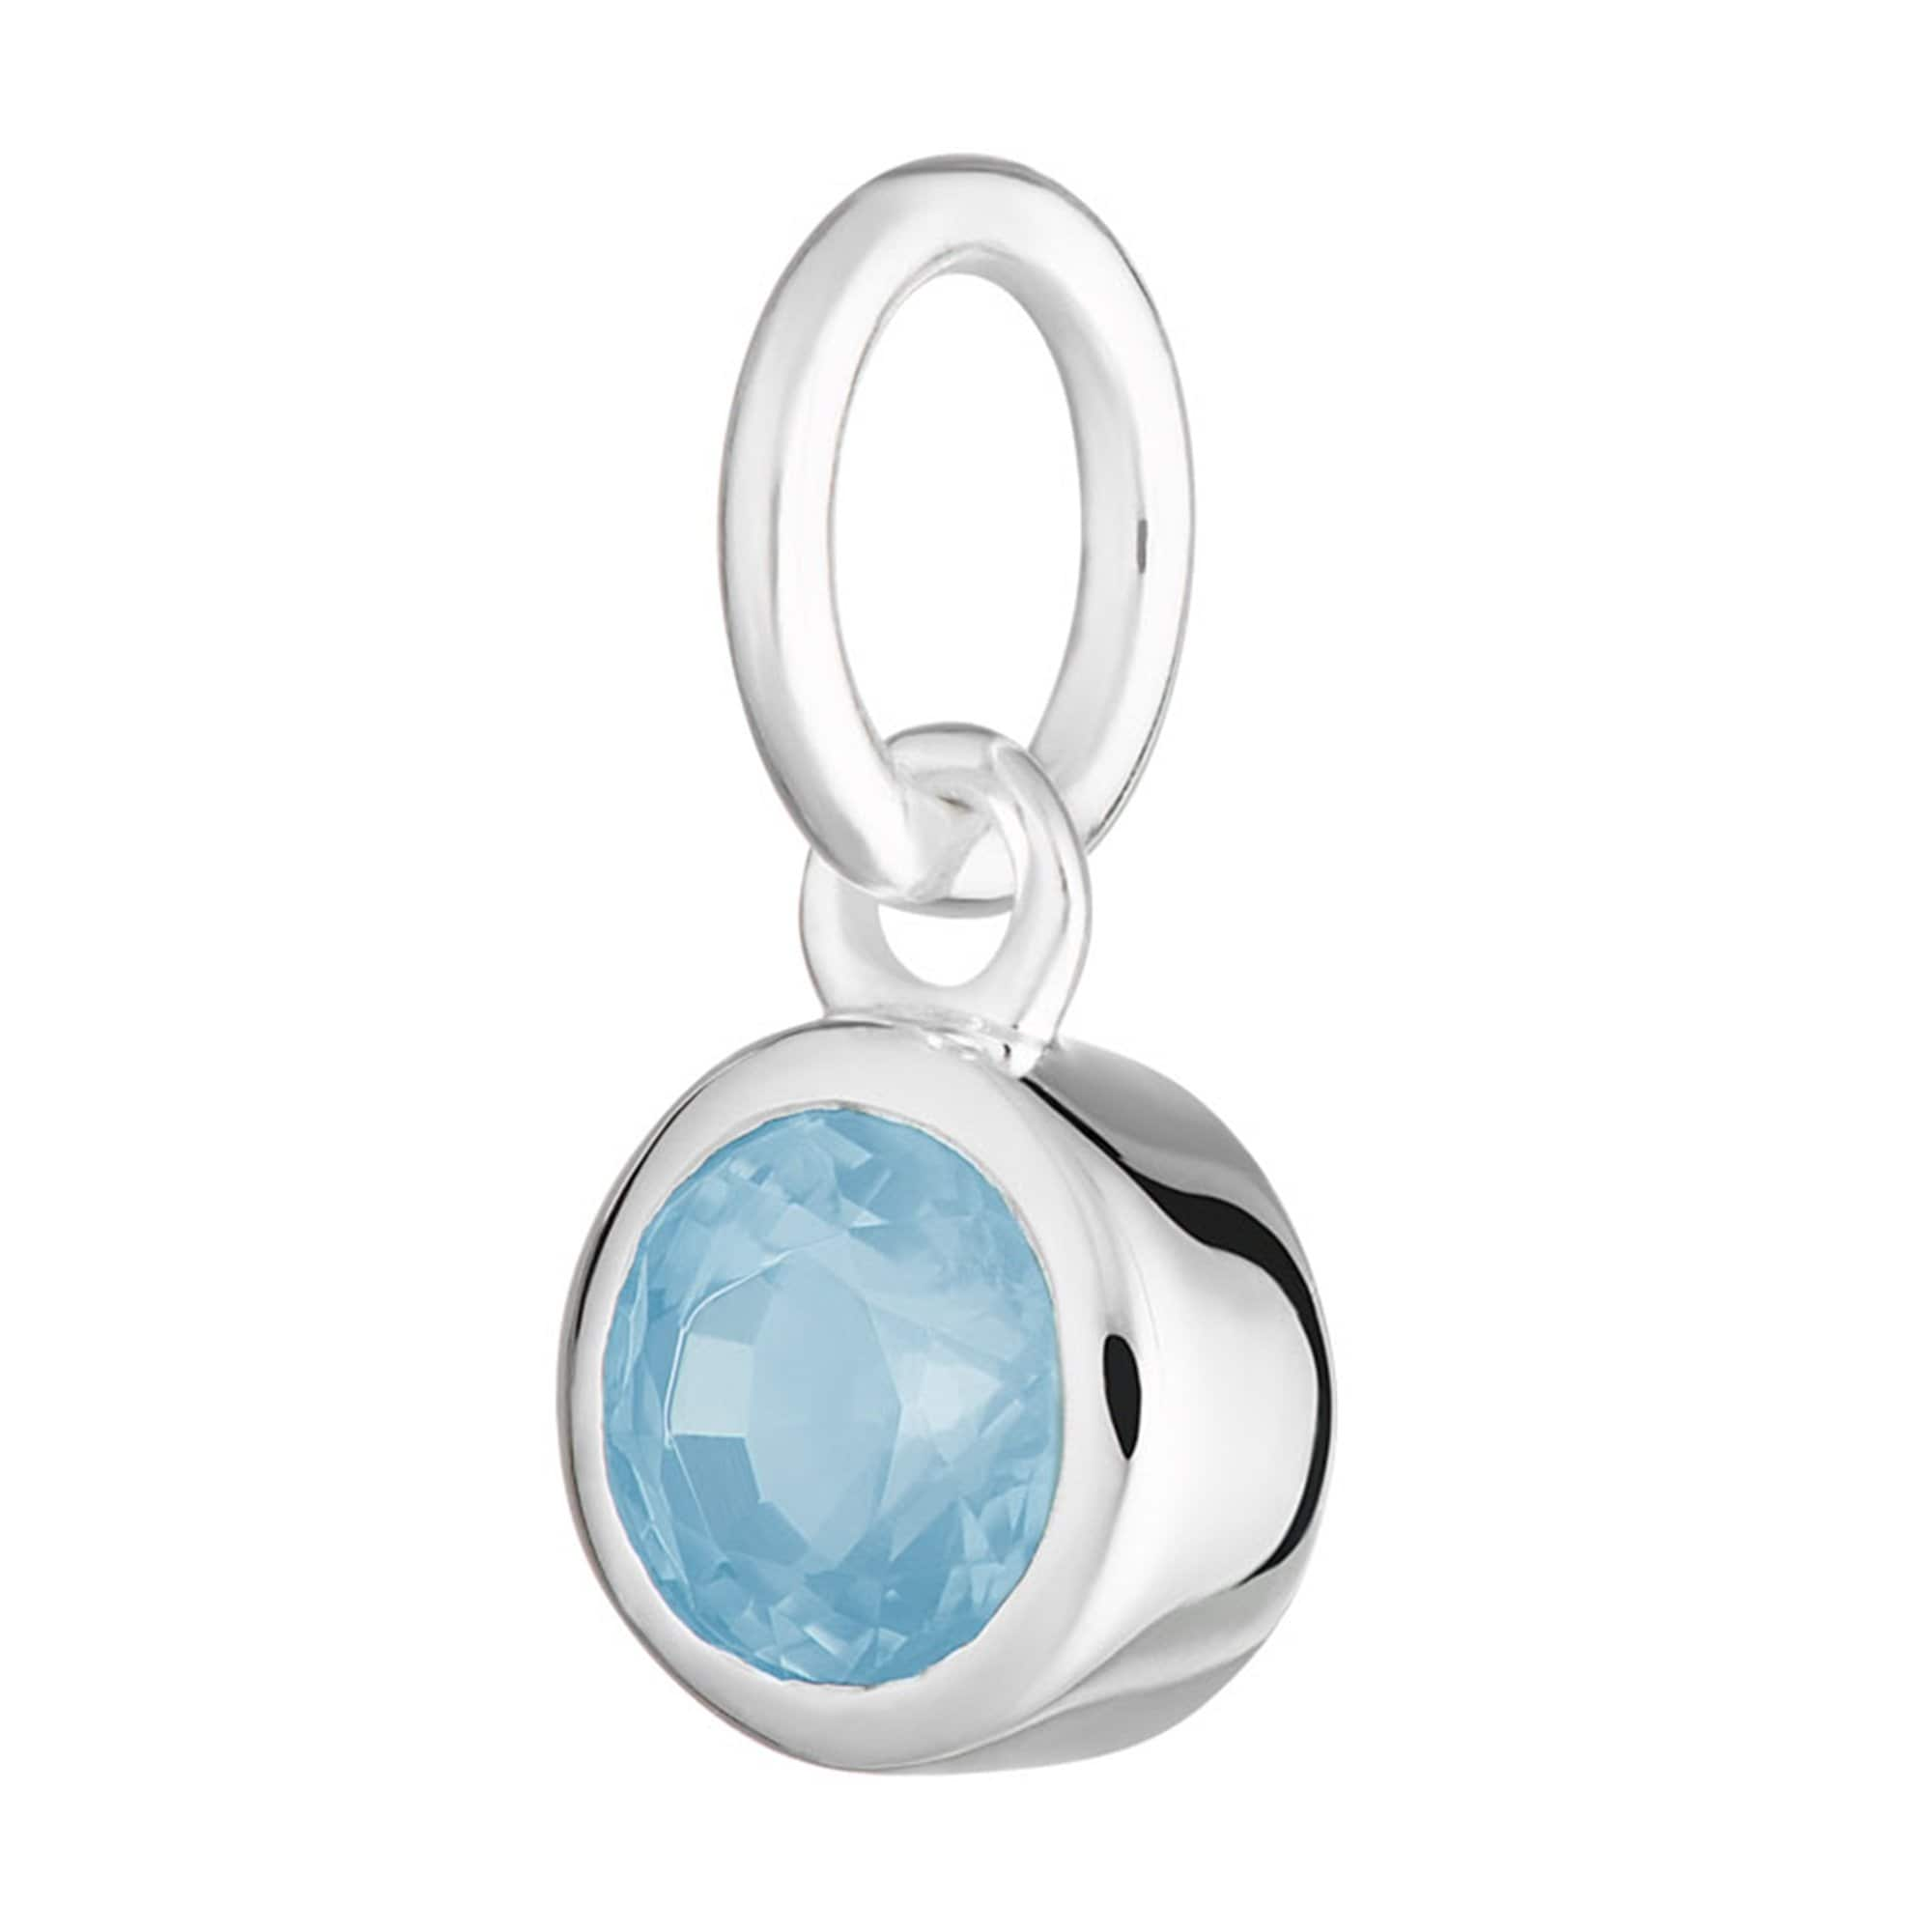 Blue Topaz Charm - December Birthstone